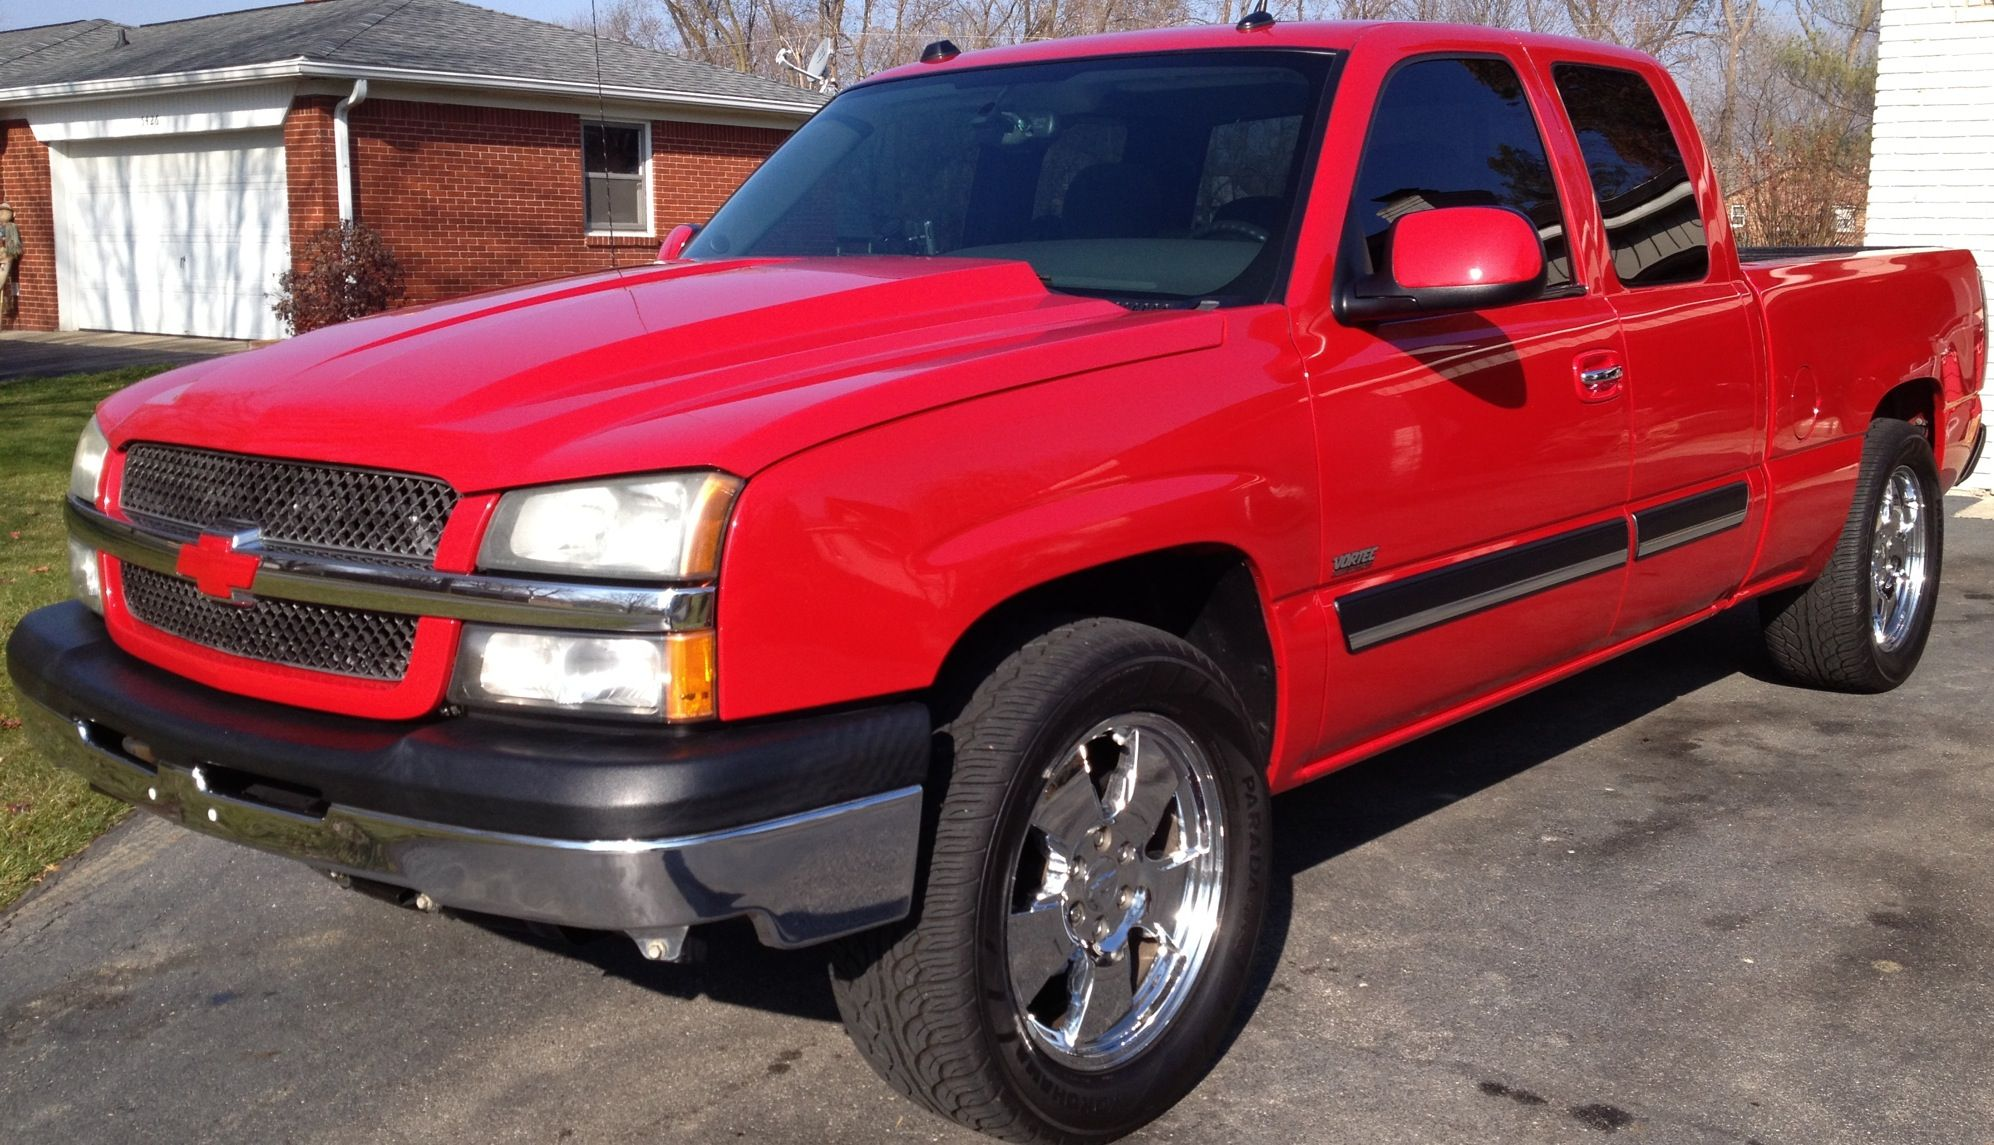 Hood S On Mirror Caps Color Matched Red Bowtie For Now Oem Escalade Door Handles 15 Window Tint 305 50r20 Yok Tinted Windows Chevy Trucks Chevy Silverado